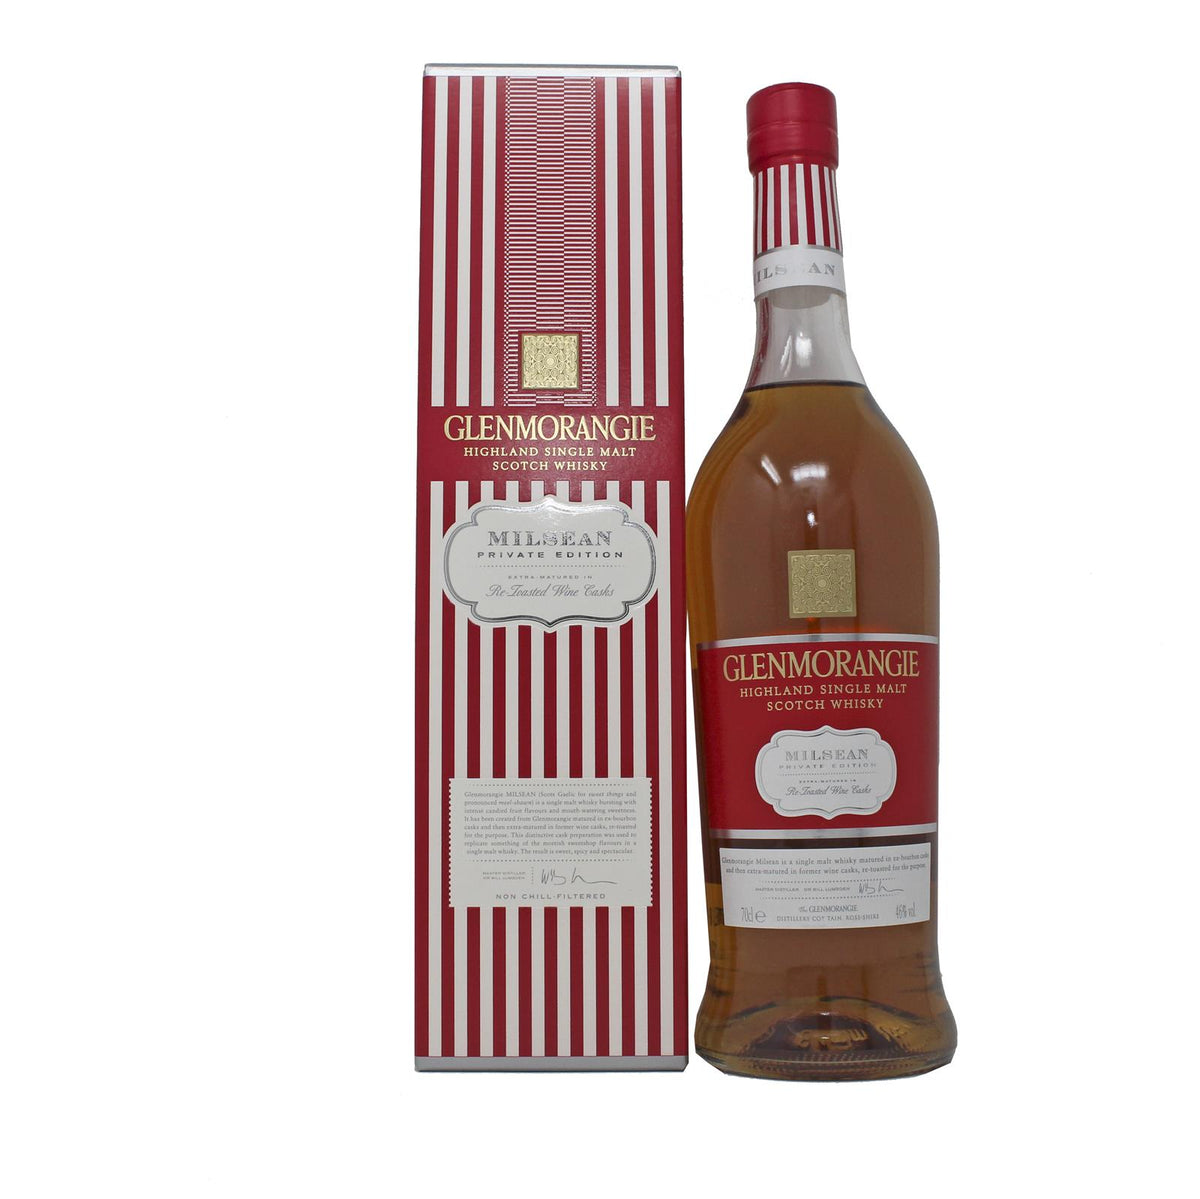 Glenmorangie Milsean Private Edition 0,7L